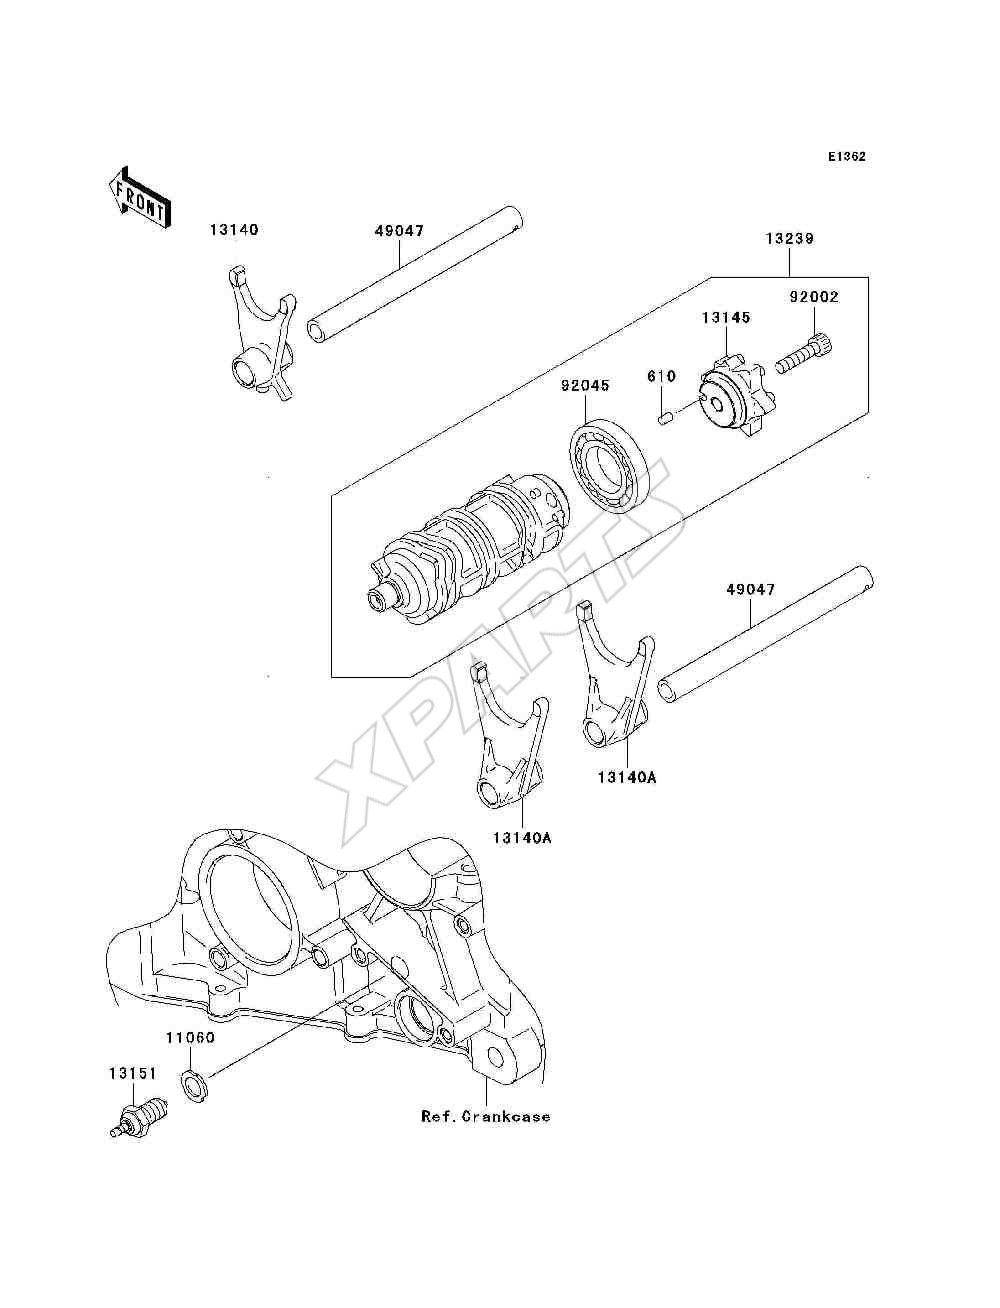 Kawasaki Ninja Zx 6r Zx636 C6f Fra 2006 Originale Reservedele Motorcycle Parts Kx65a6f Kx65 Engine Covers Diagram Billede Til Varegruppe Gear Change Drum Shift Forks